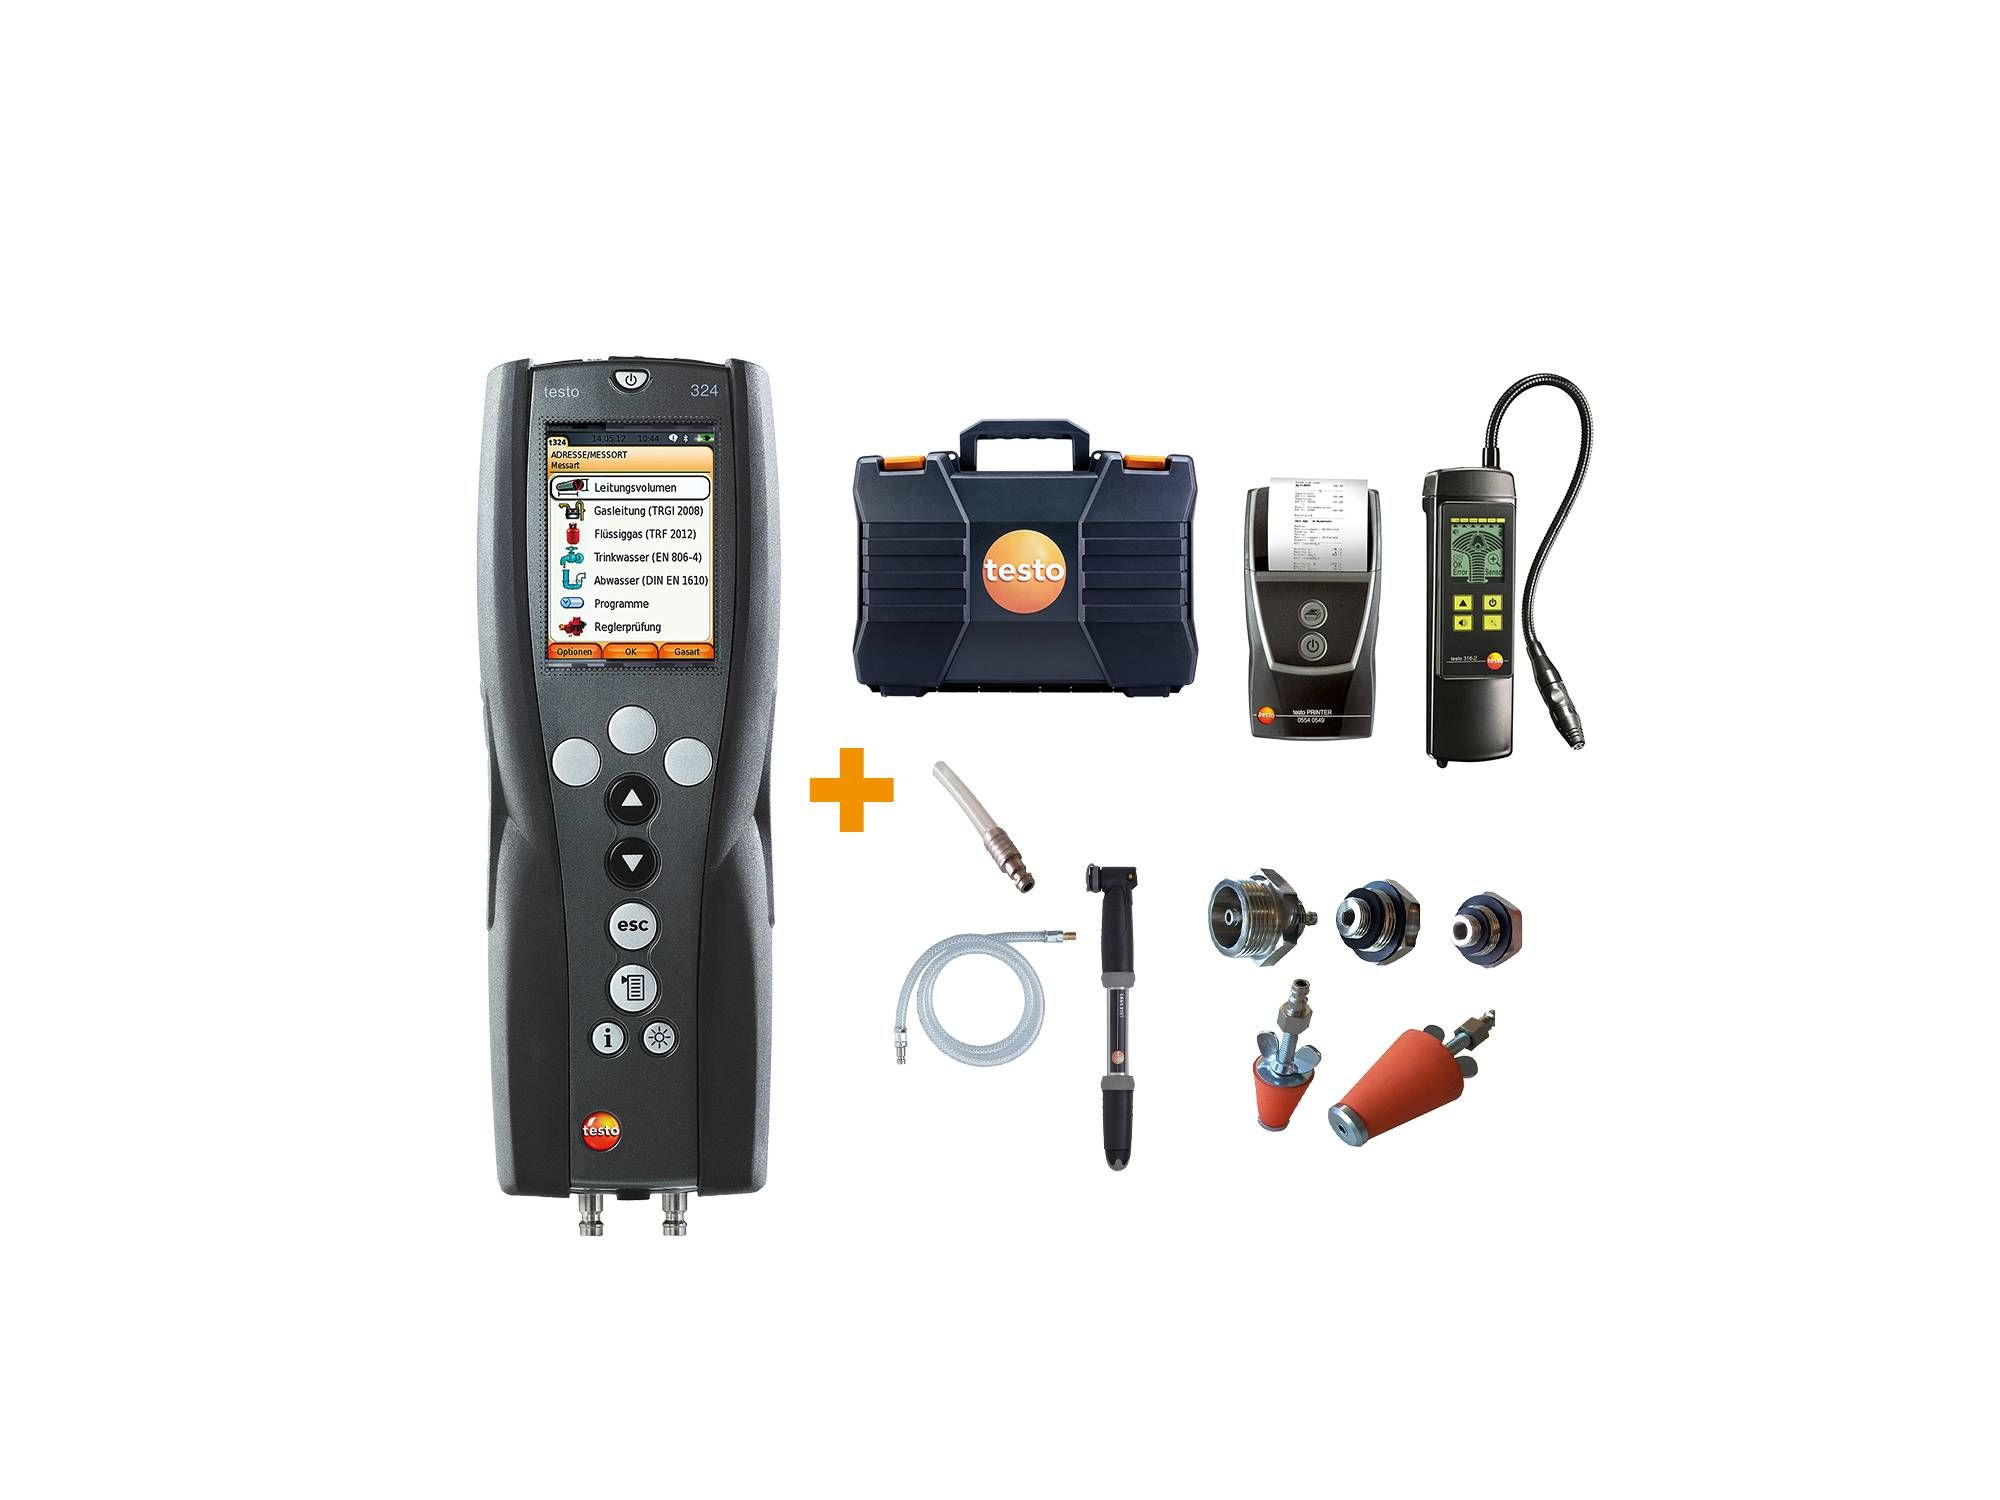 testo-324-profi-set.jpg Product ...